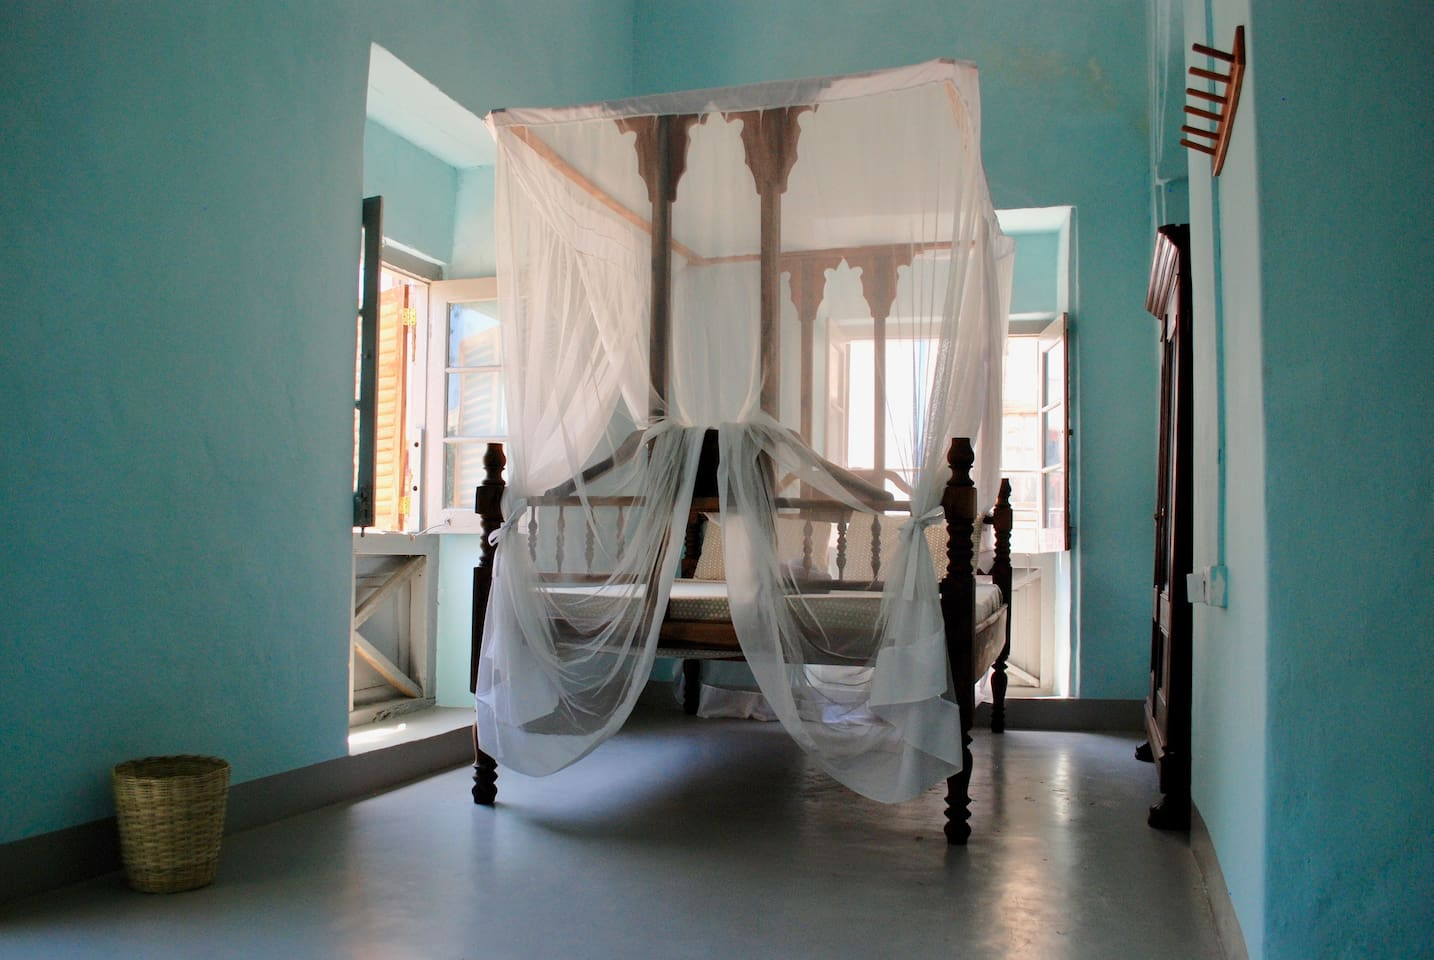 A unique, light and spacious bedroom in the heart of Stone Town with three windows (1 with seaview, 1 with small alley/building view and 1 view street view). Extra big Zanzibar-style handmade wood double bed (150x200cm), mosquito net, ceiling fan, closet with mirror, wooden hooks for clothes/towels and a table with chair.